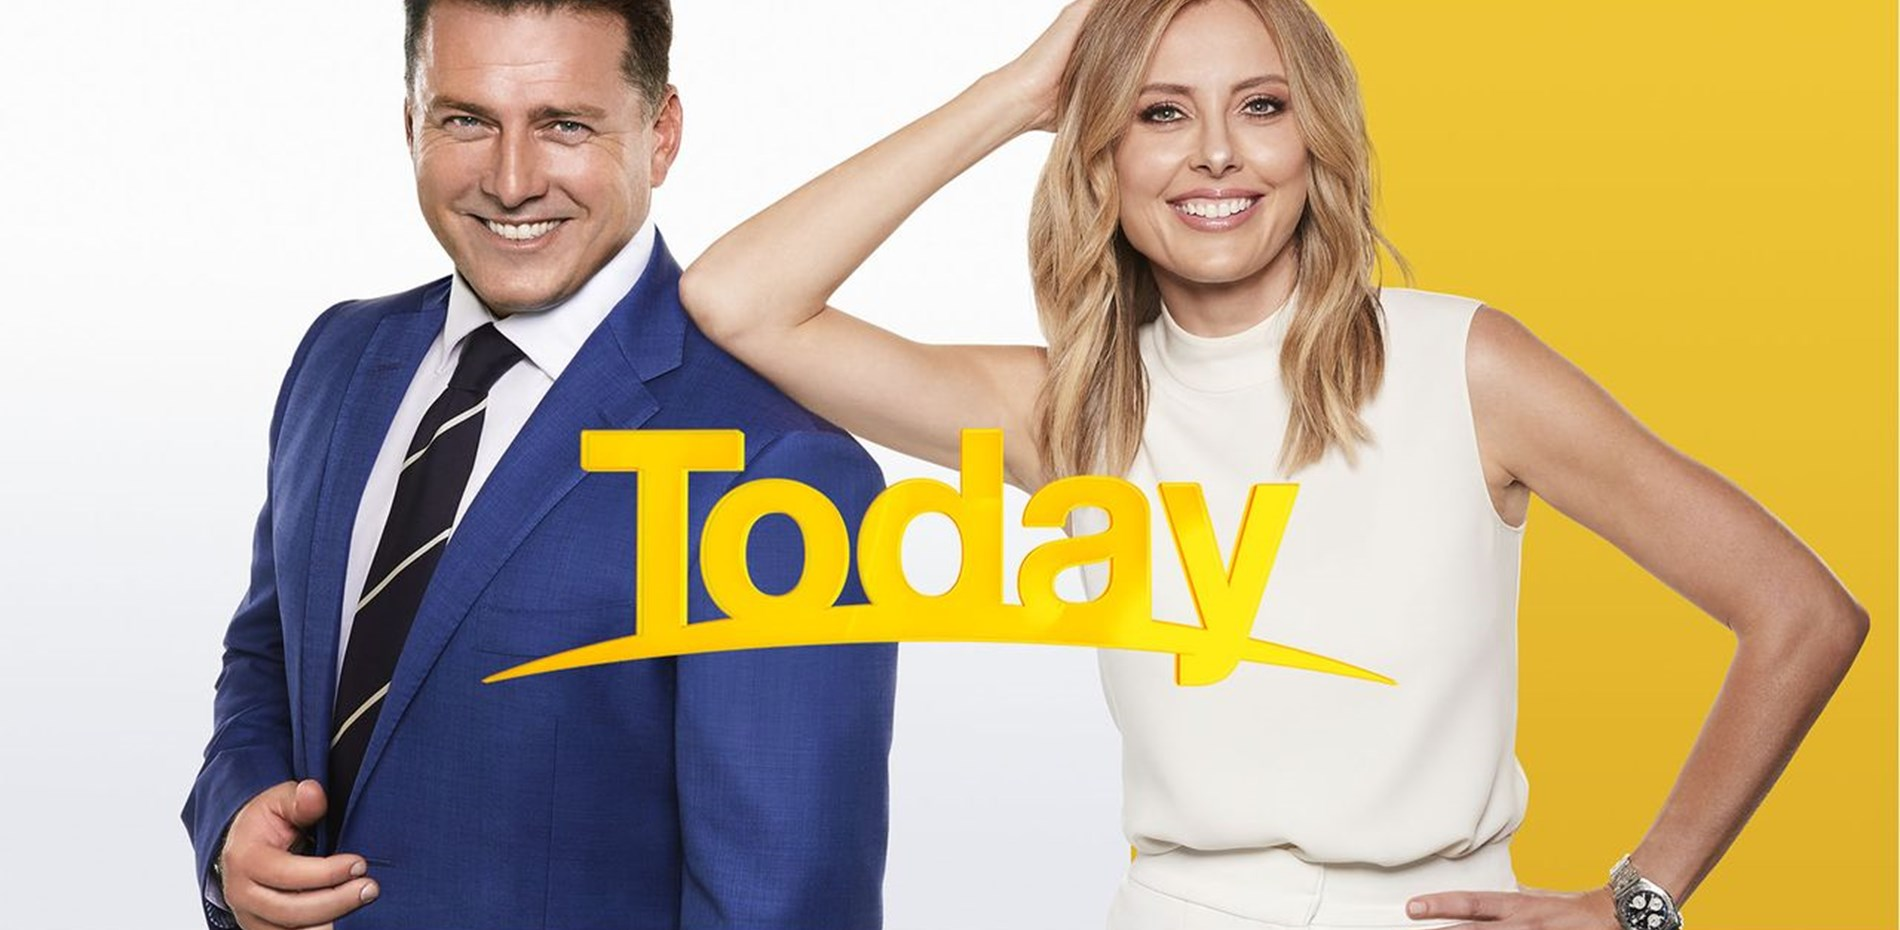 Transcript - Television Interview - TODAY Show - Friday, 20 November 2020 Main Image